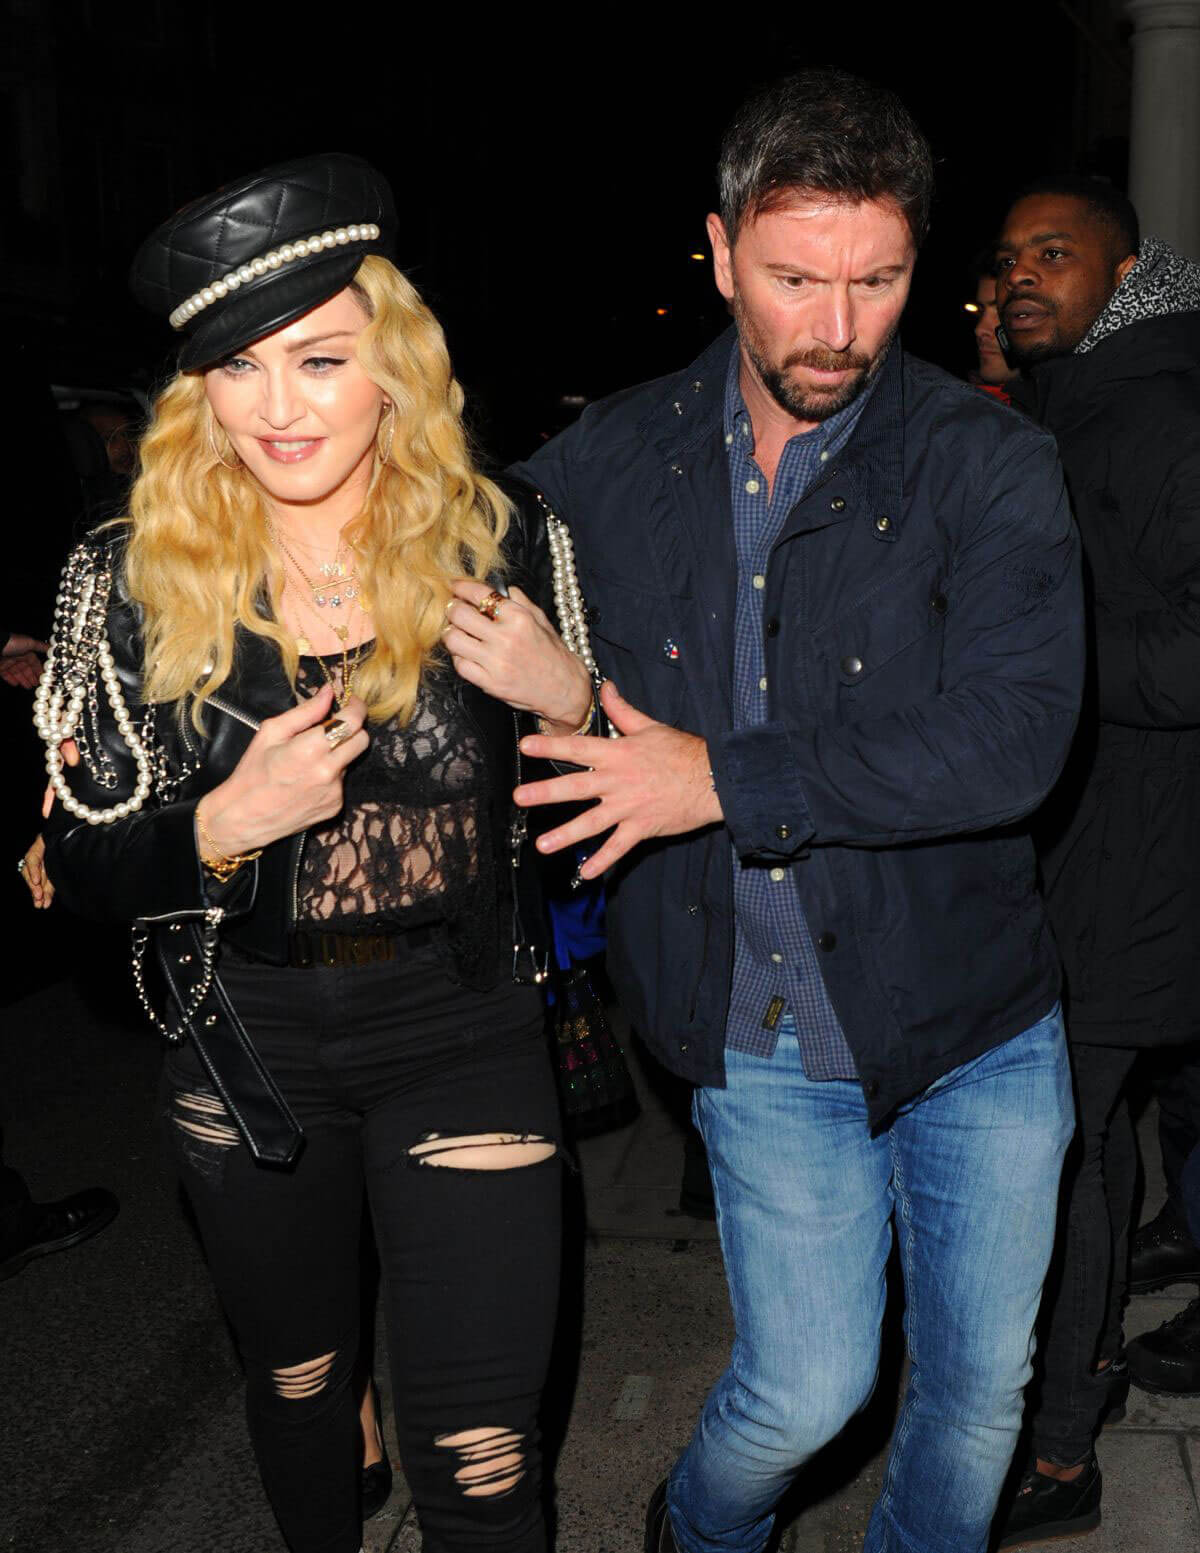 Singer Madonna Photos at Night Out in London